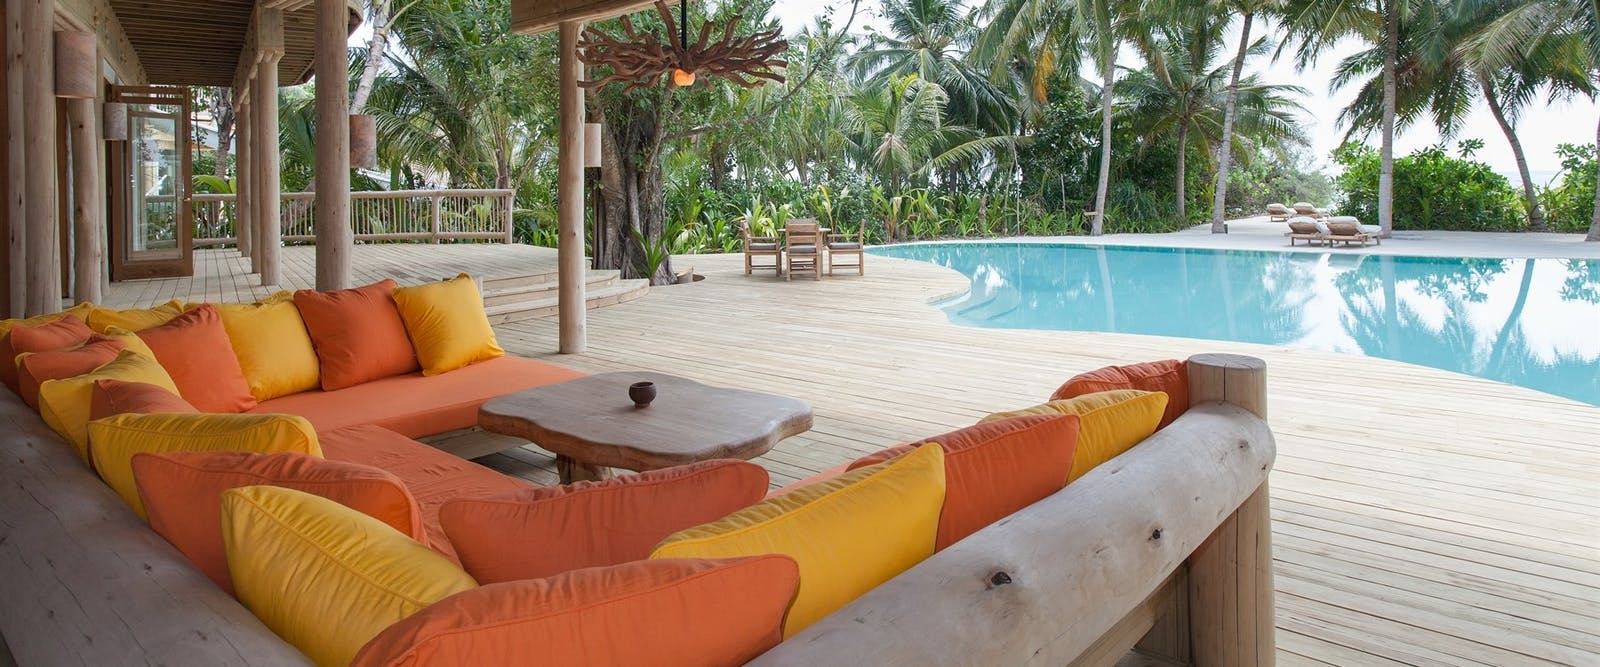 Daybed next to the pool in Villa 14 at Soneva Fushi, Maldives, Indian Ocean